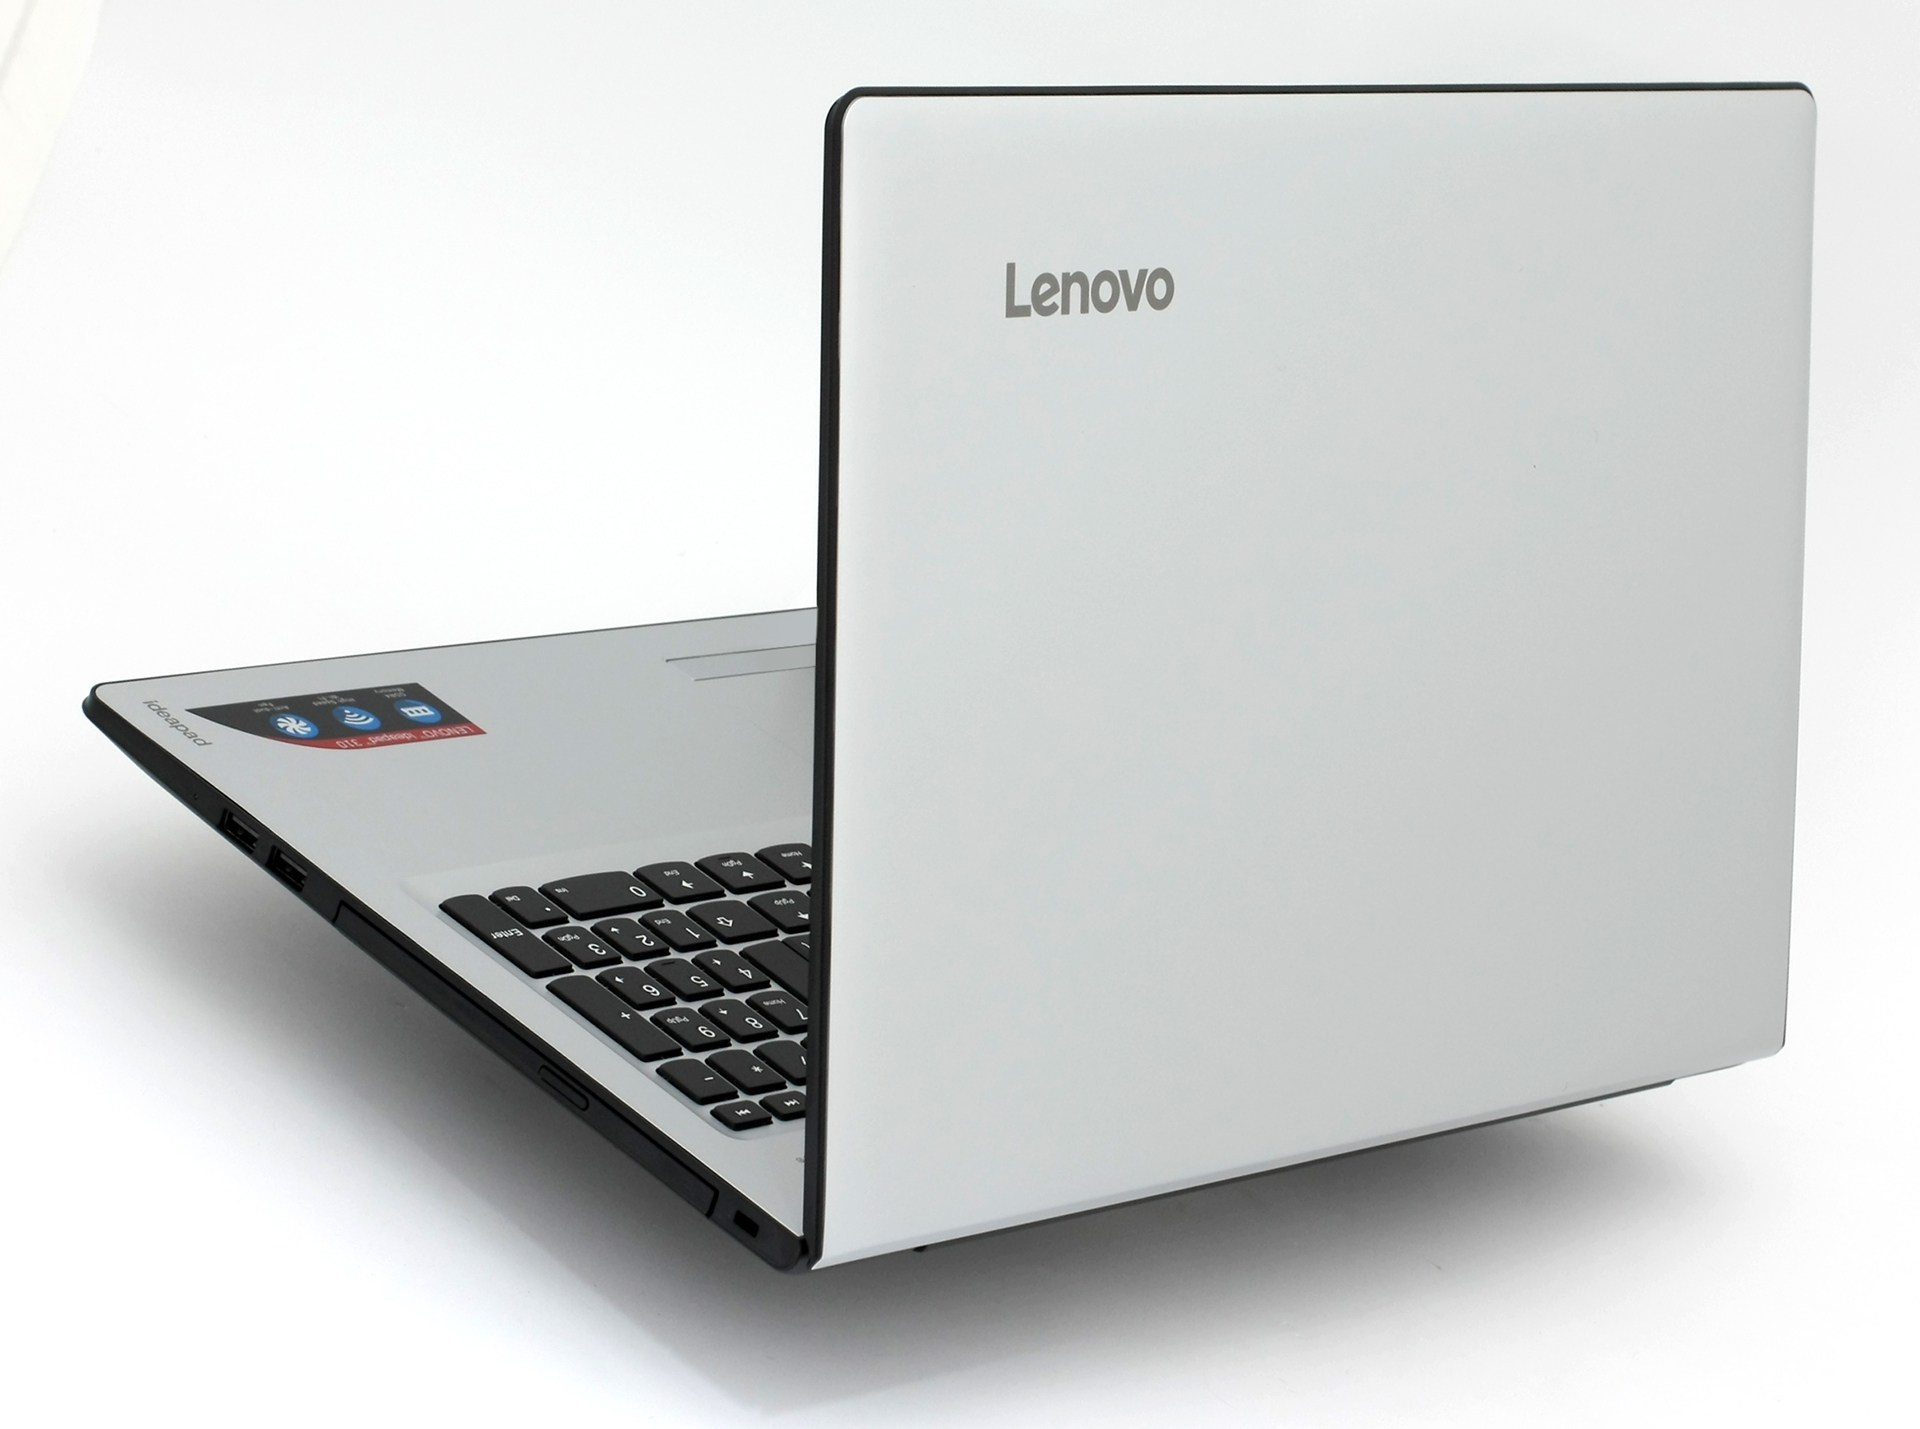 pad 310 Lenovo ideapad 310-15isk drivers support to windows 7 32 bit 64bit windows 81 64bit windows 10 64bit : lenovo ideapad 310-15isk – 80sm017smh drivers, lenovo ideapad 310 drivers 2359.